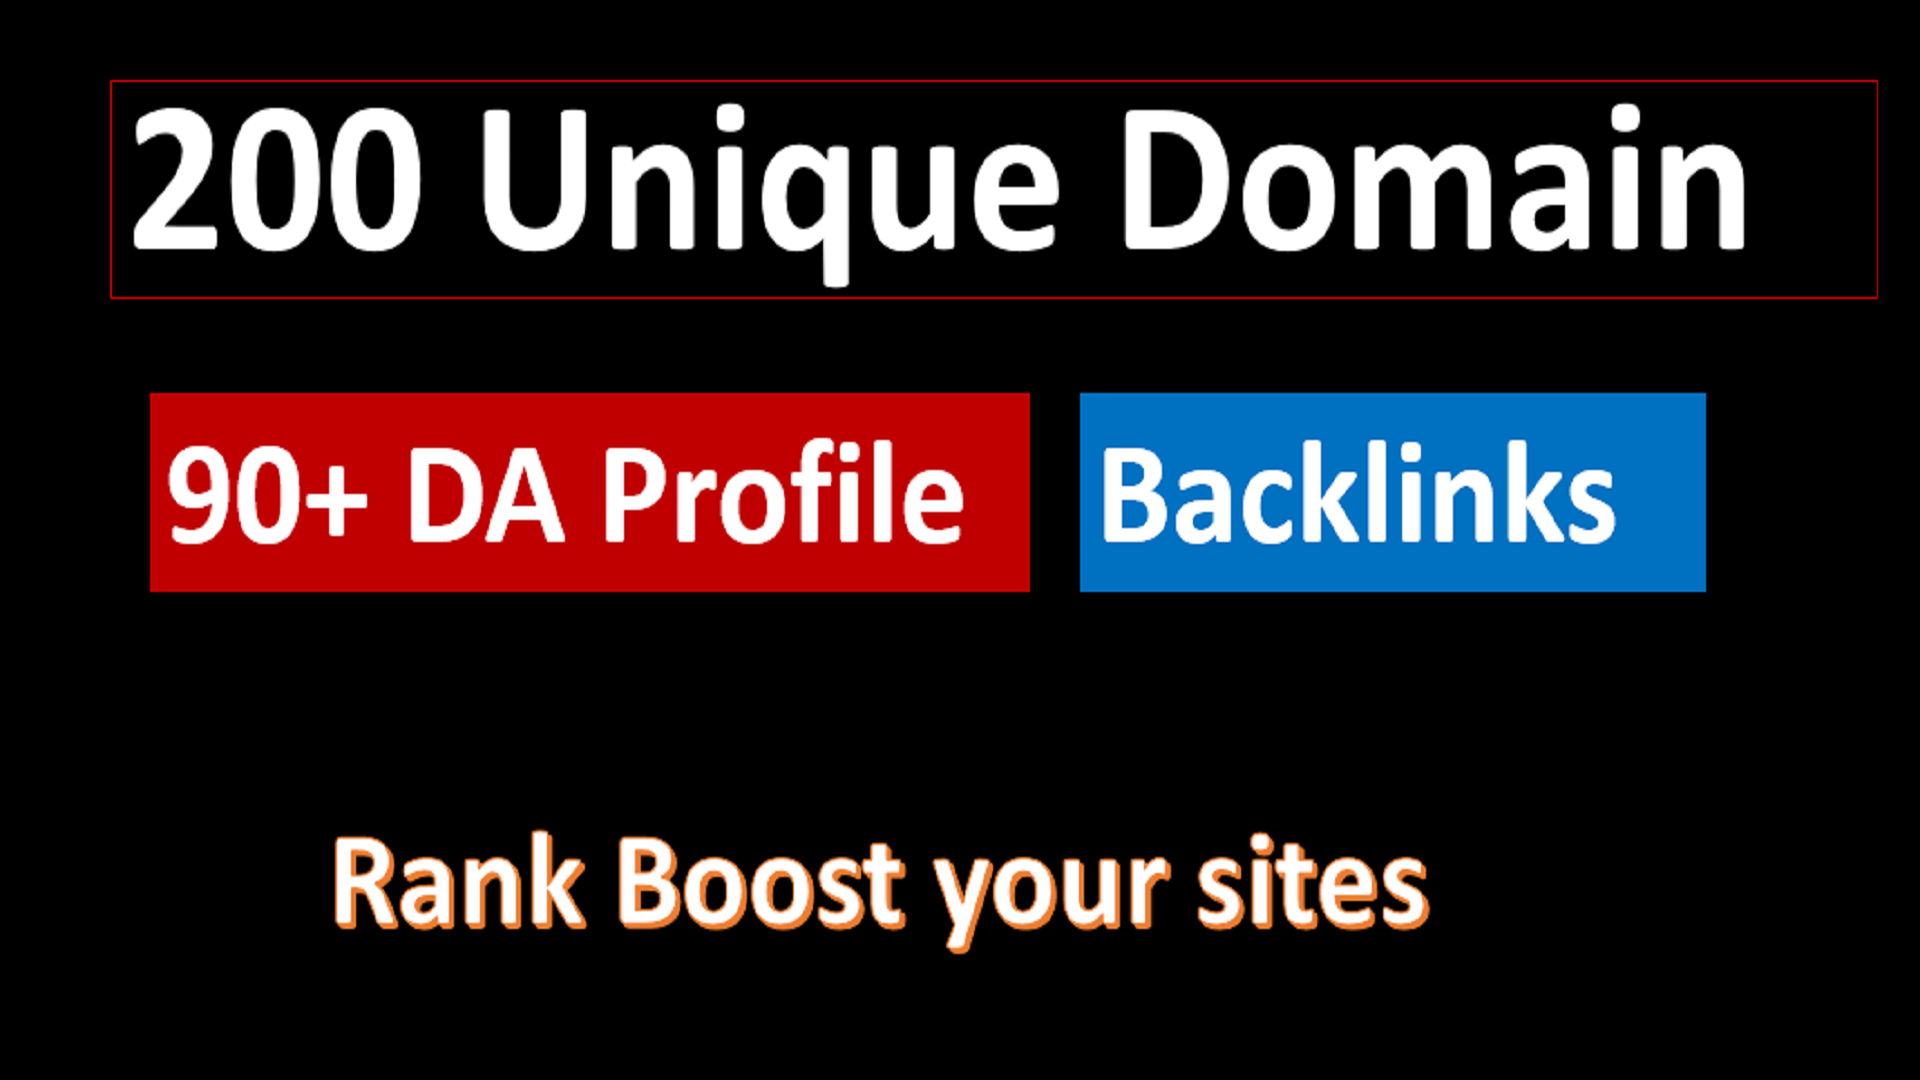 I will provide 90+DR/PR 200 Social Profile High-Quality Backlinks to boost your Business profile.